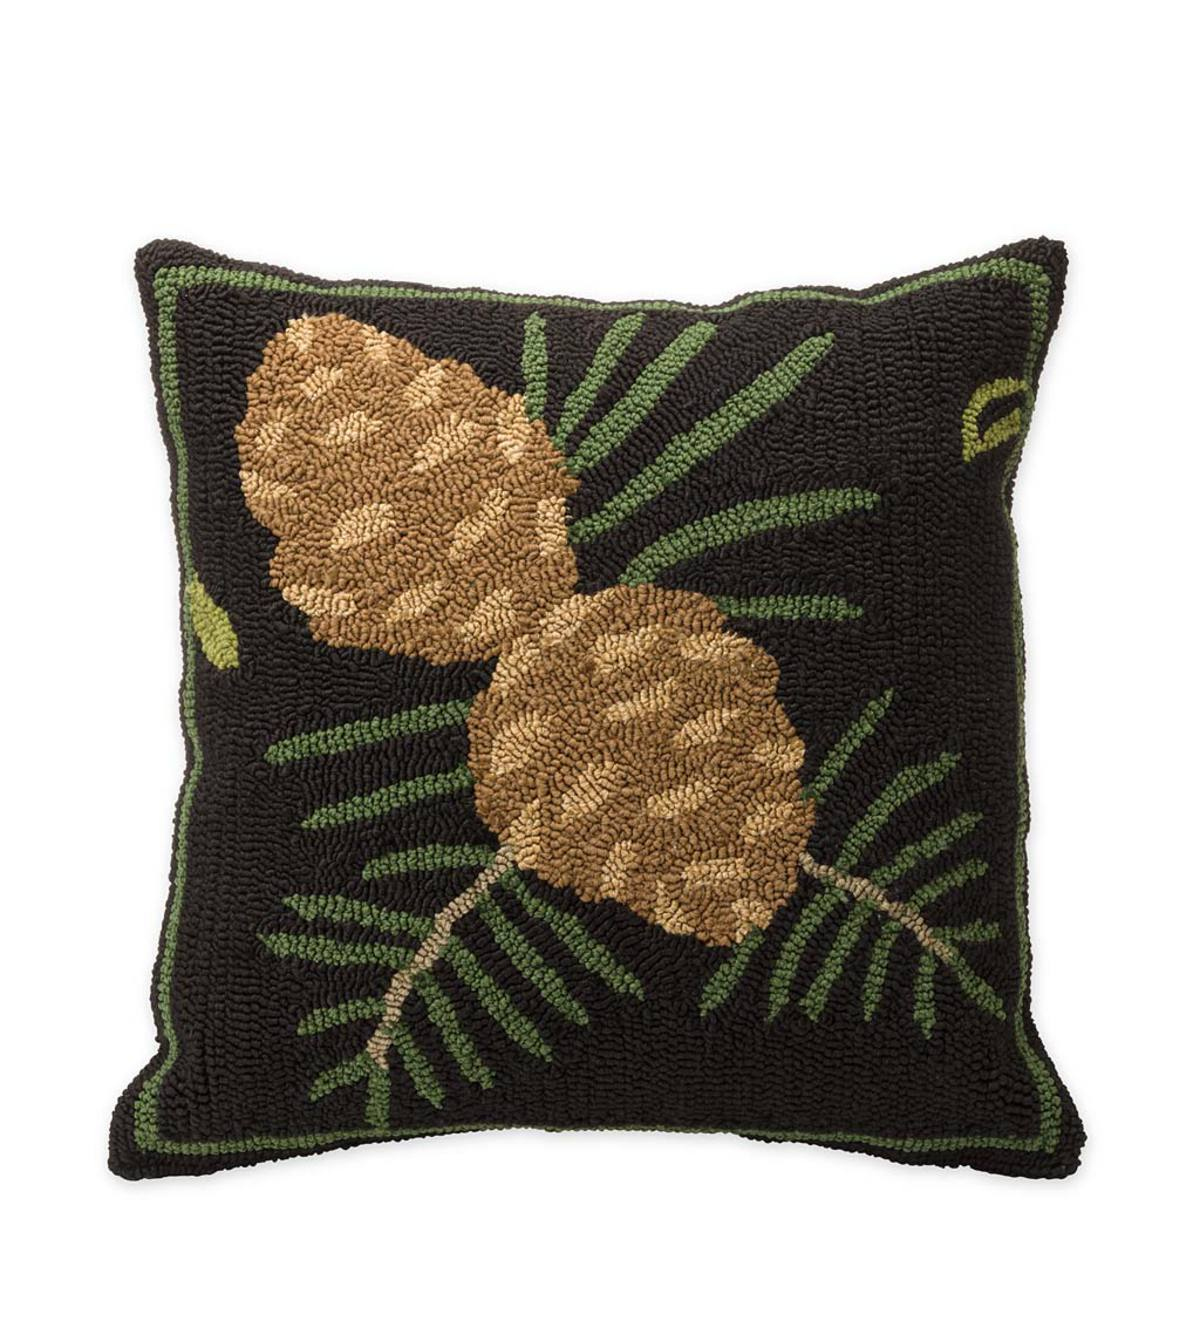 Indoor/Outdoor Woodland Throw Pillow with Pine Cones